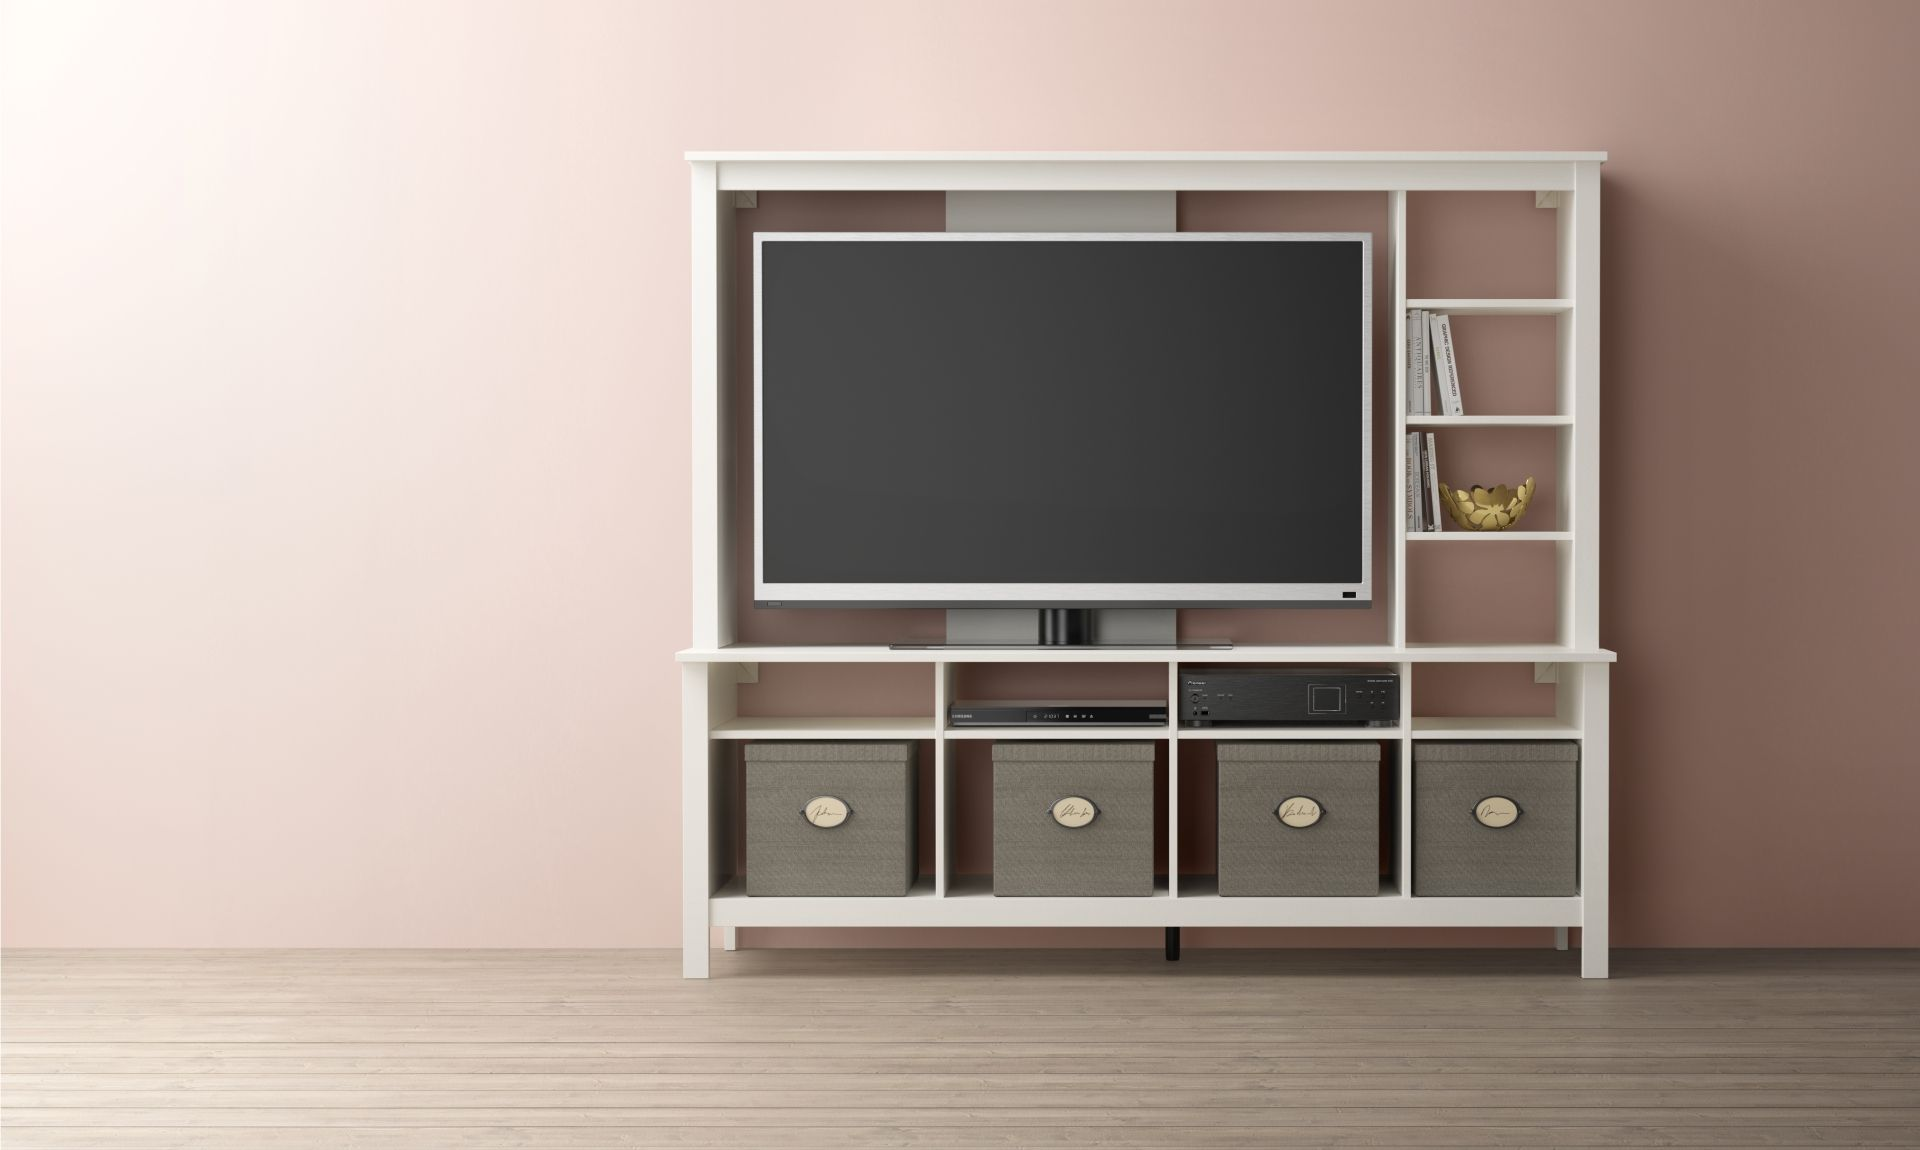 Tv Meubel Expedit Ikea.Tomnas Tv Meubel Ikeacatalogus Nieuw 2017 Ikea Ikeanl Tv